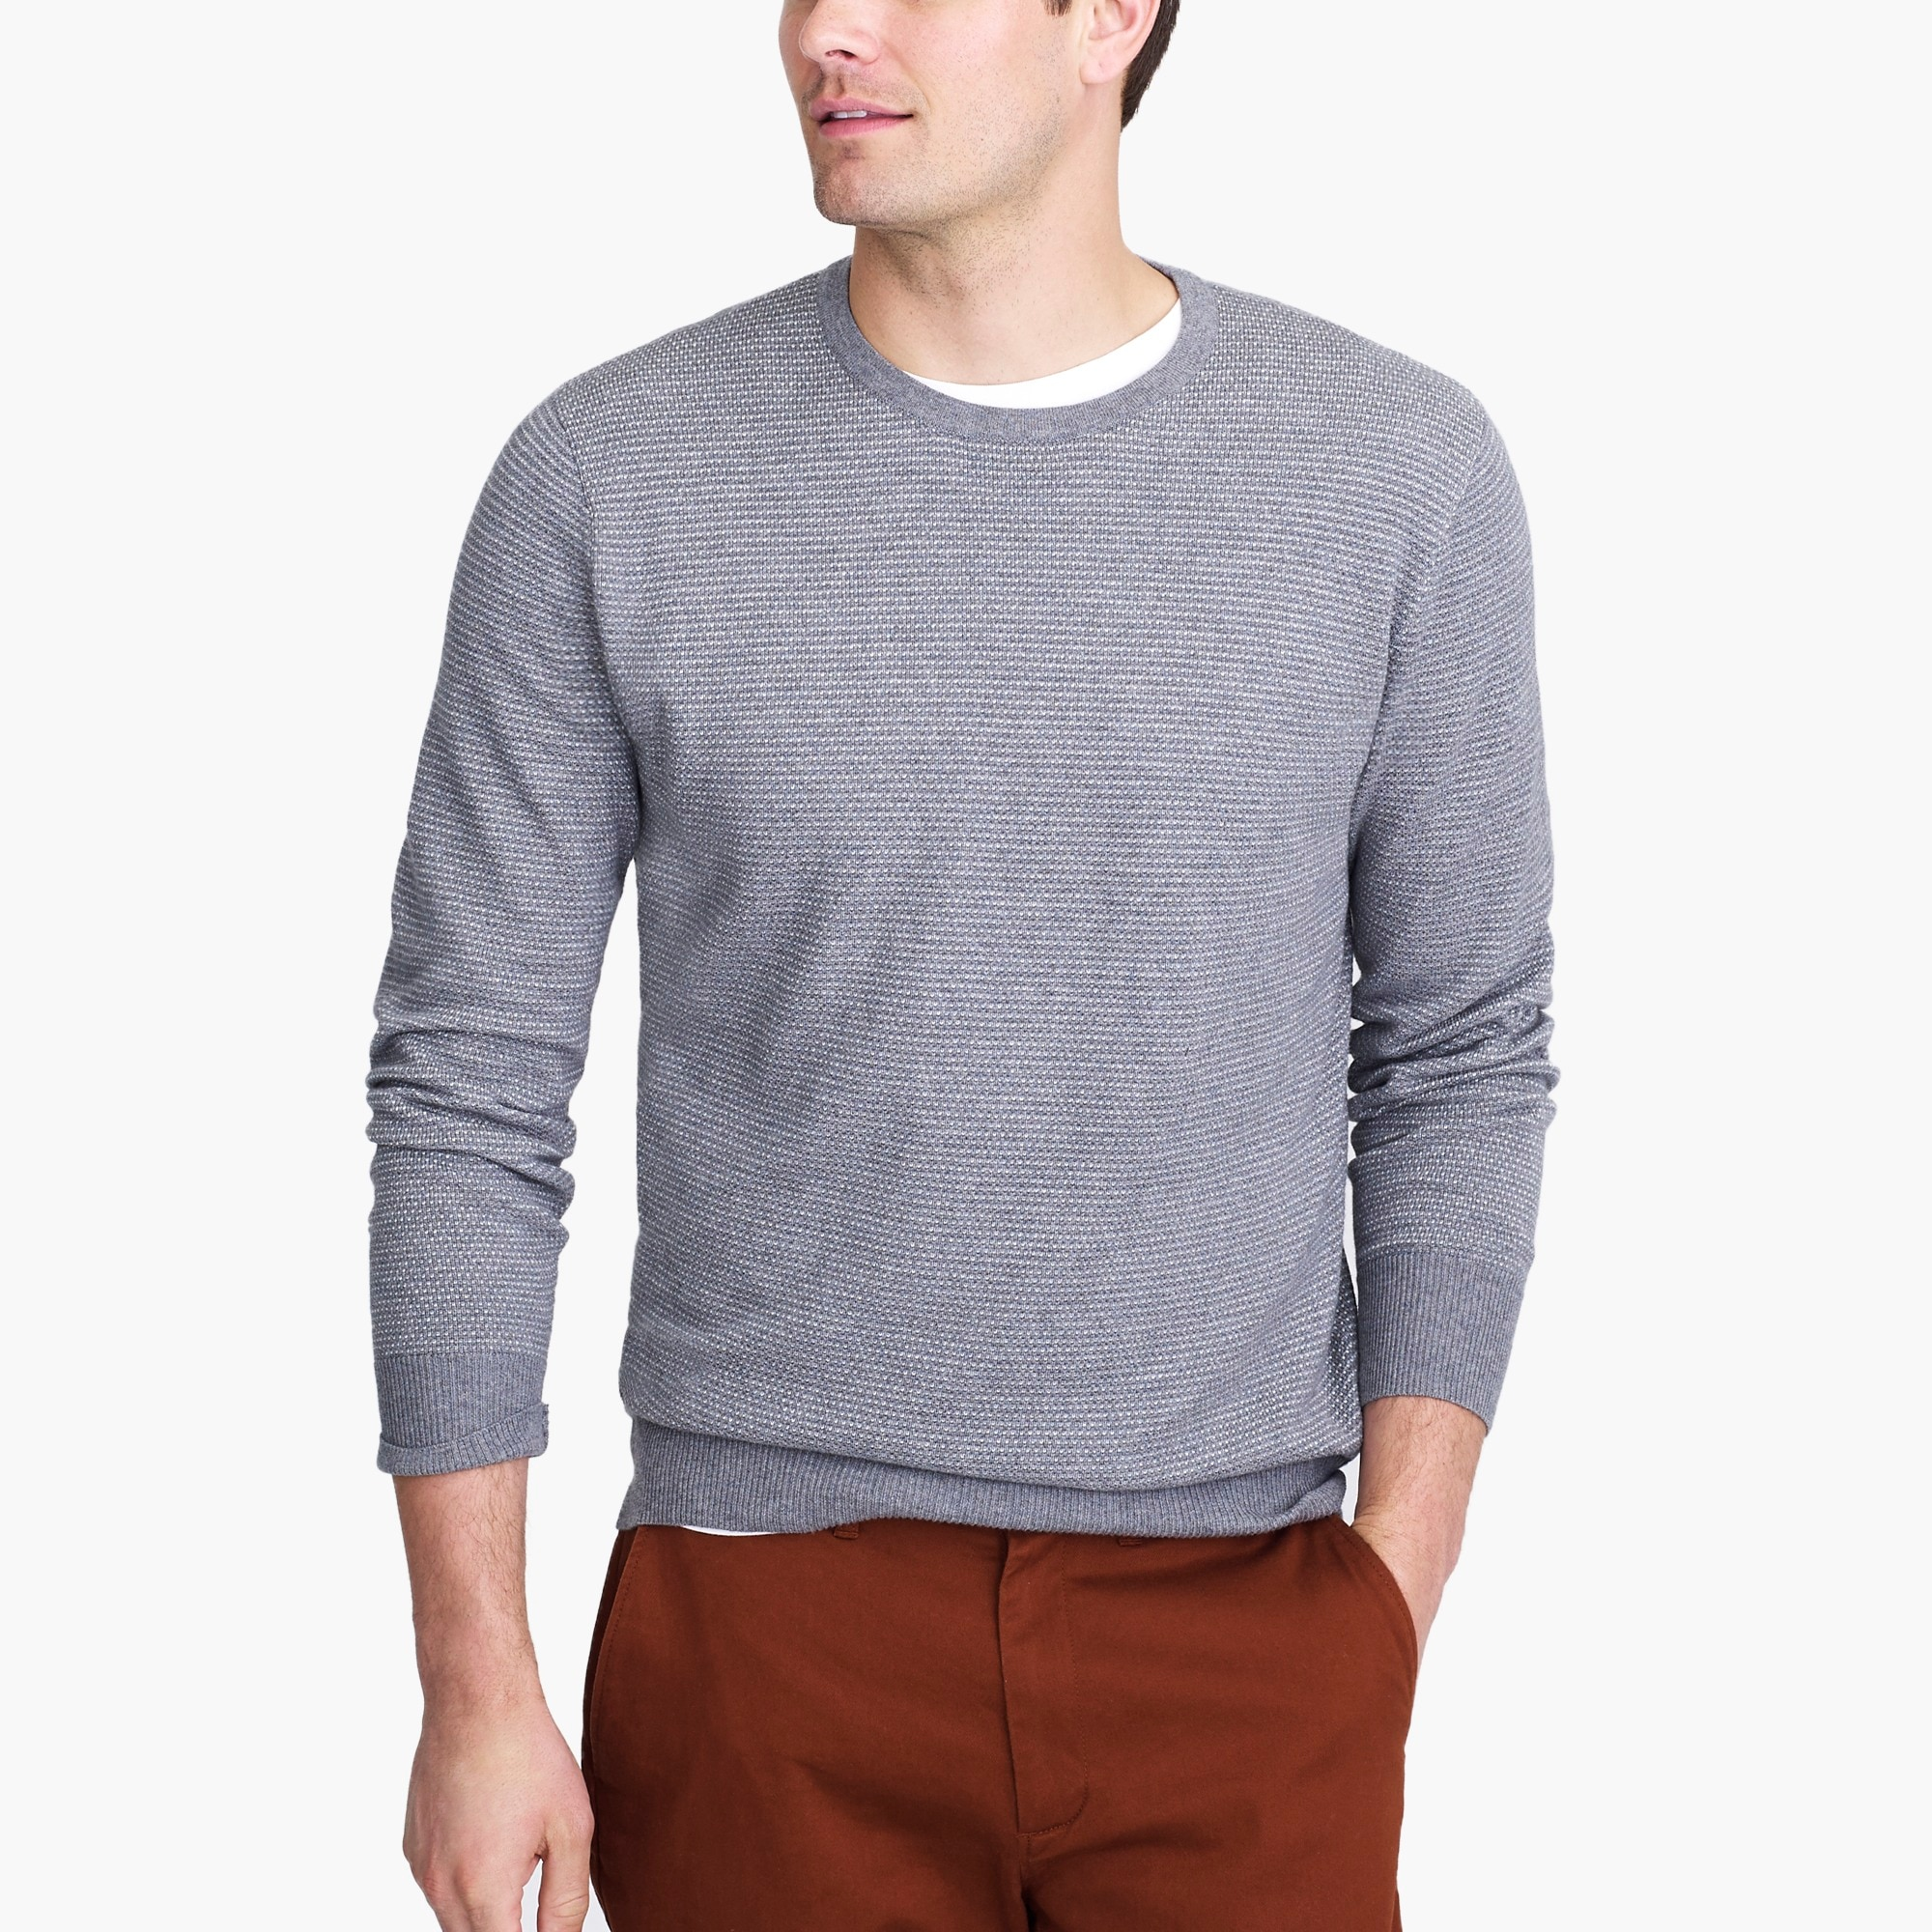 Image 1 for Slim-fit cotton piqué sweater in birdseye